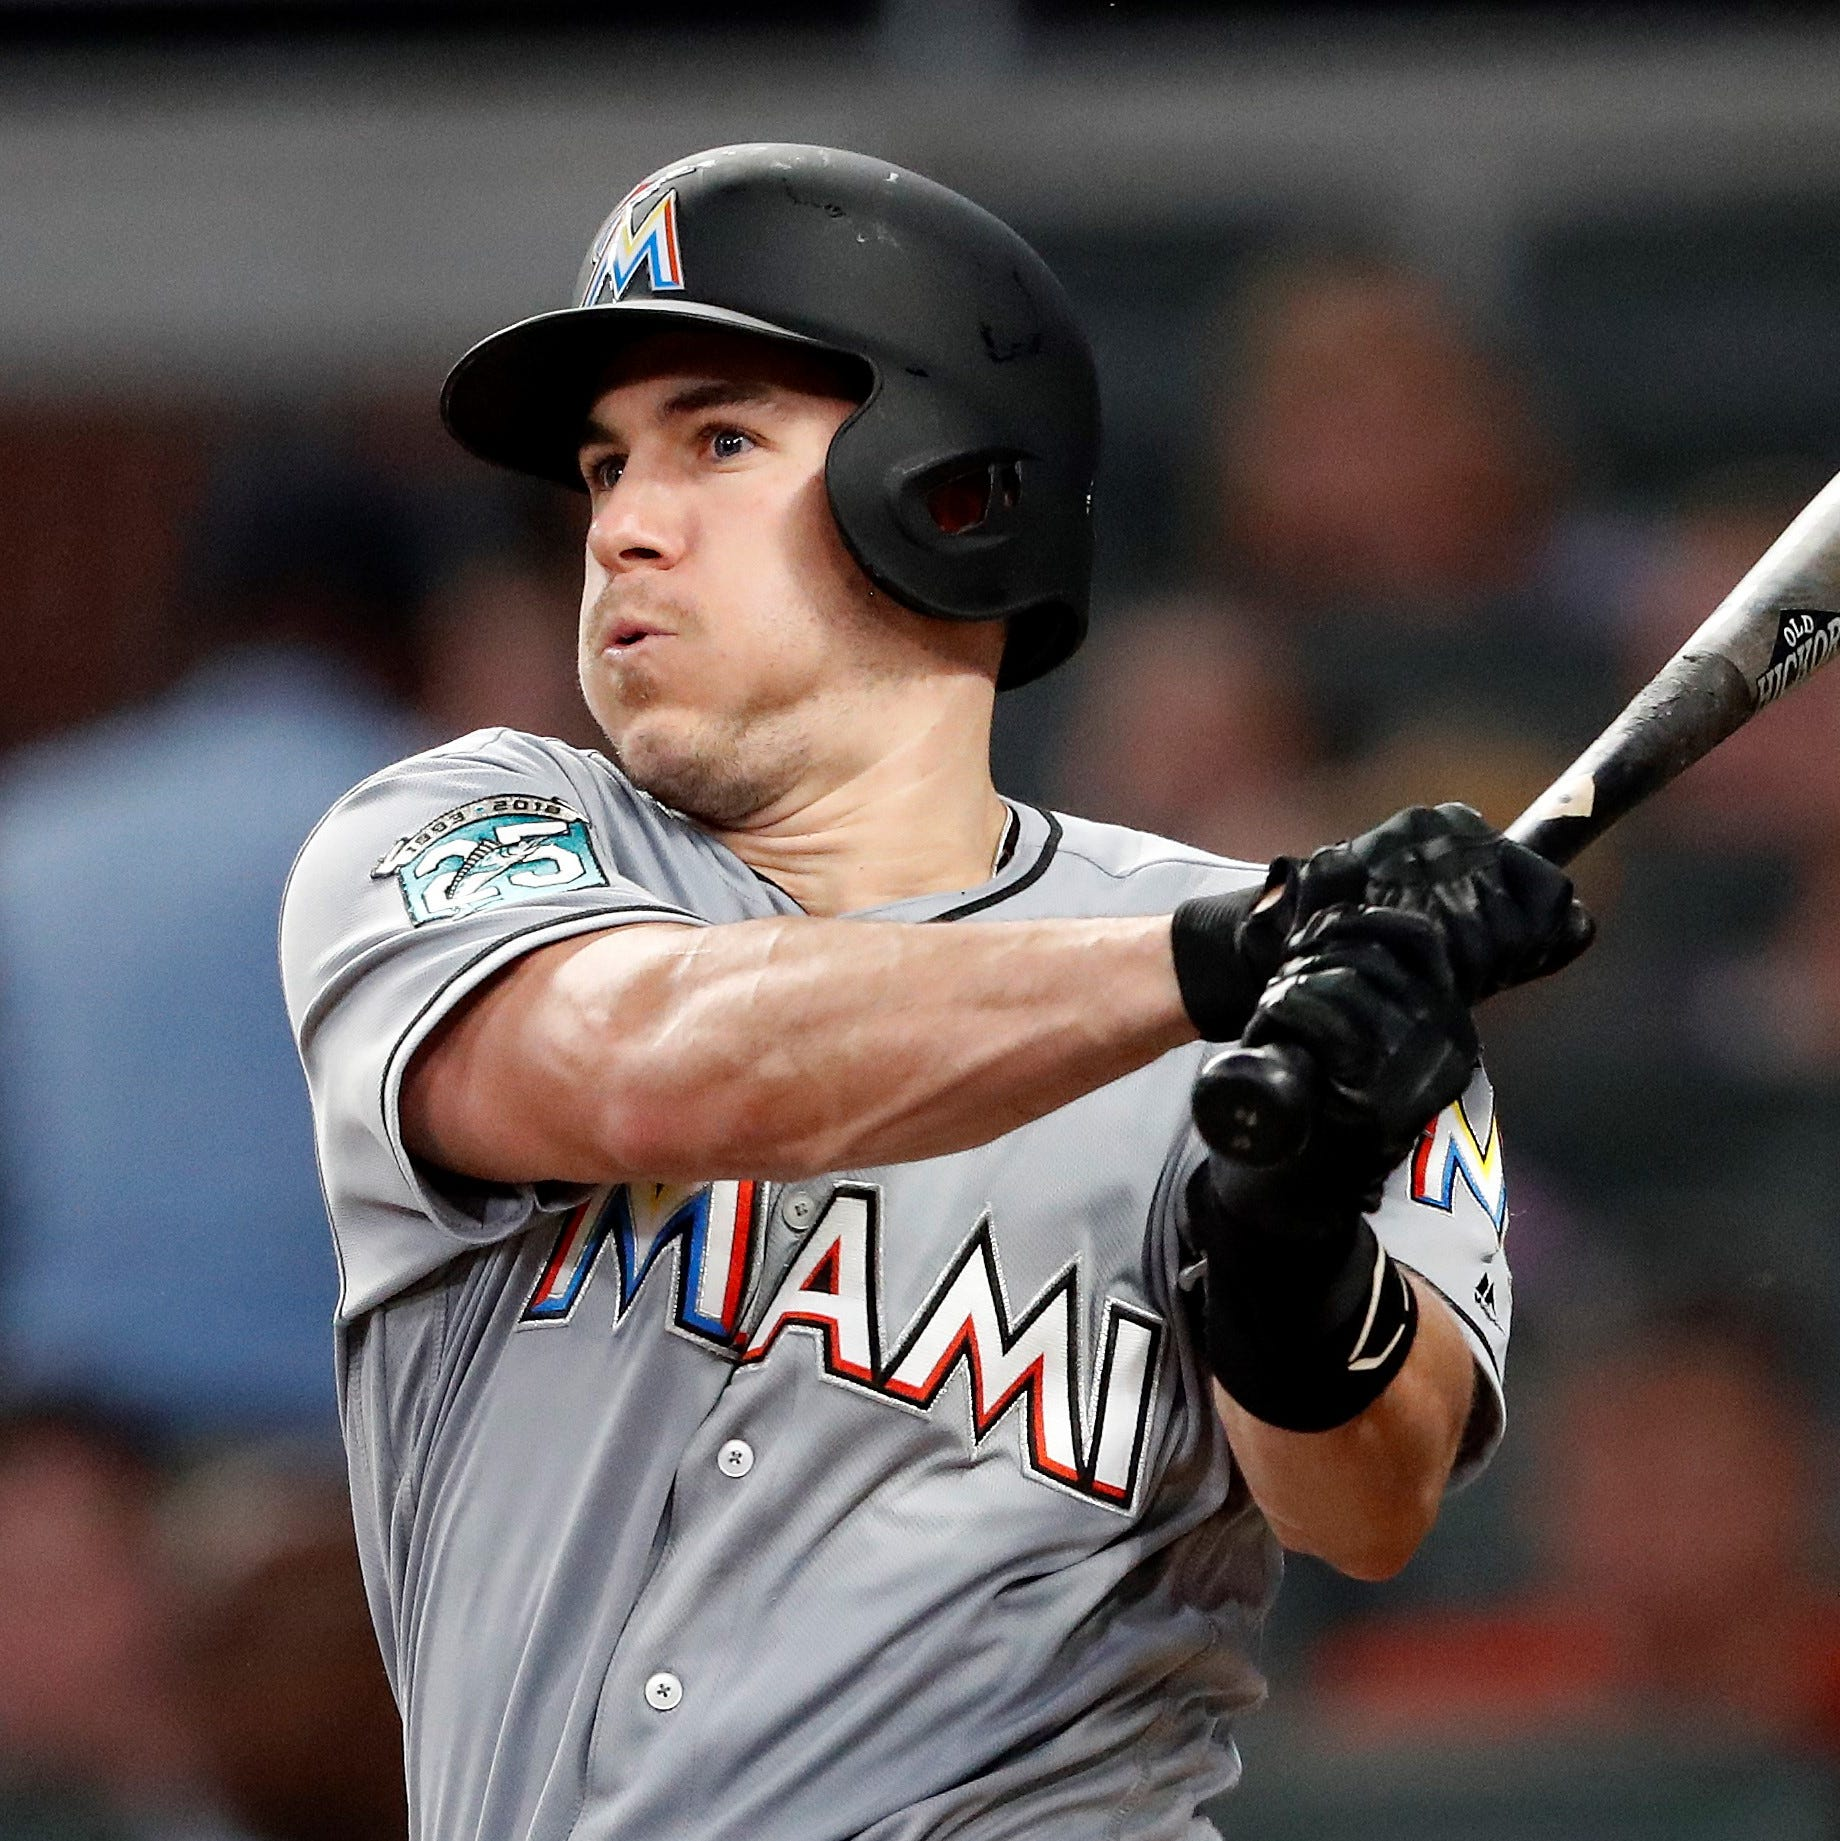 Phillies obtain All-Star catcher Realmuto from Marlins for Alfaro, two pitching prospects